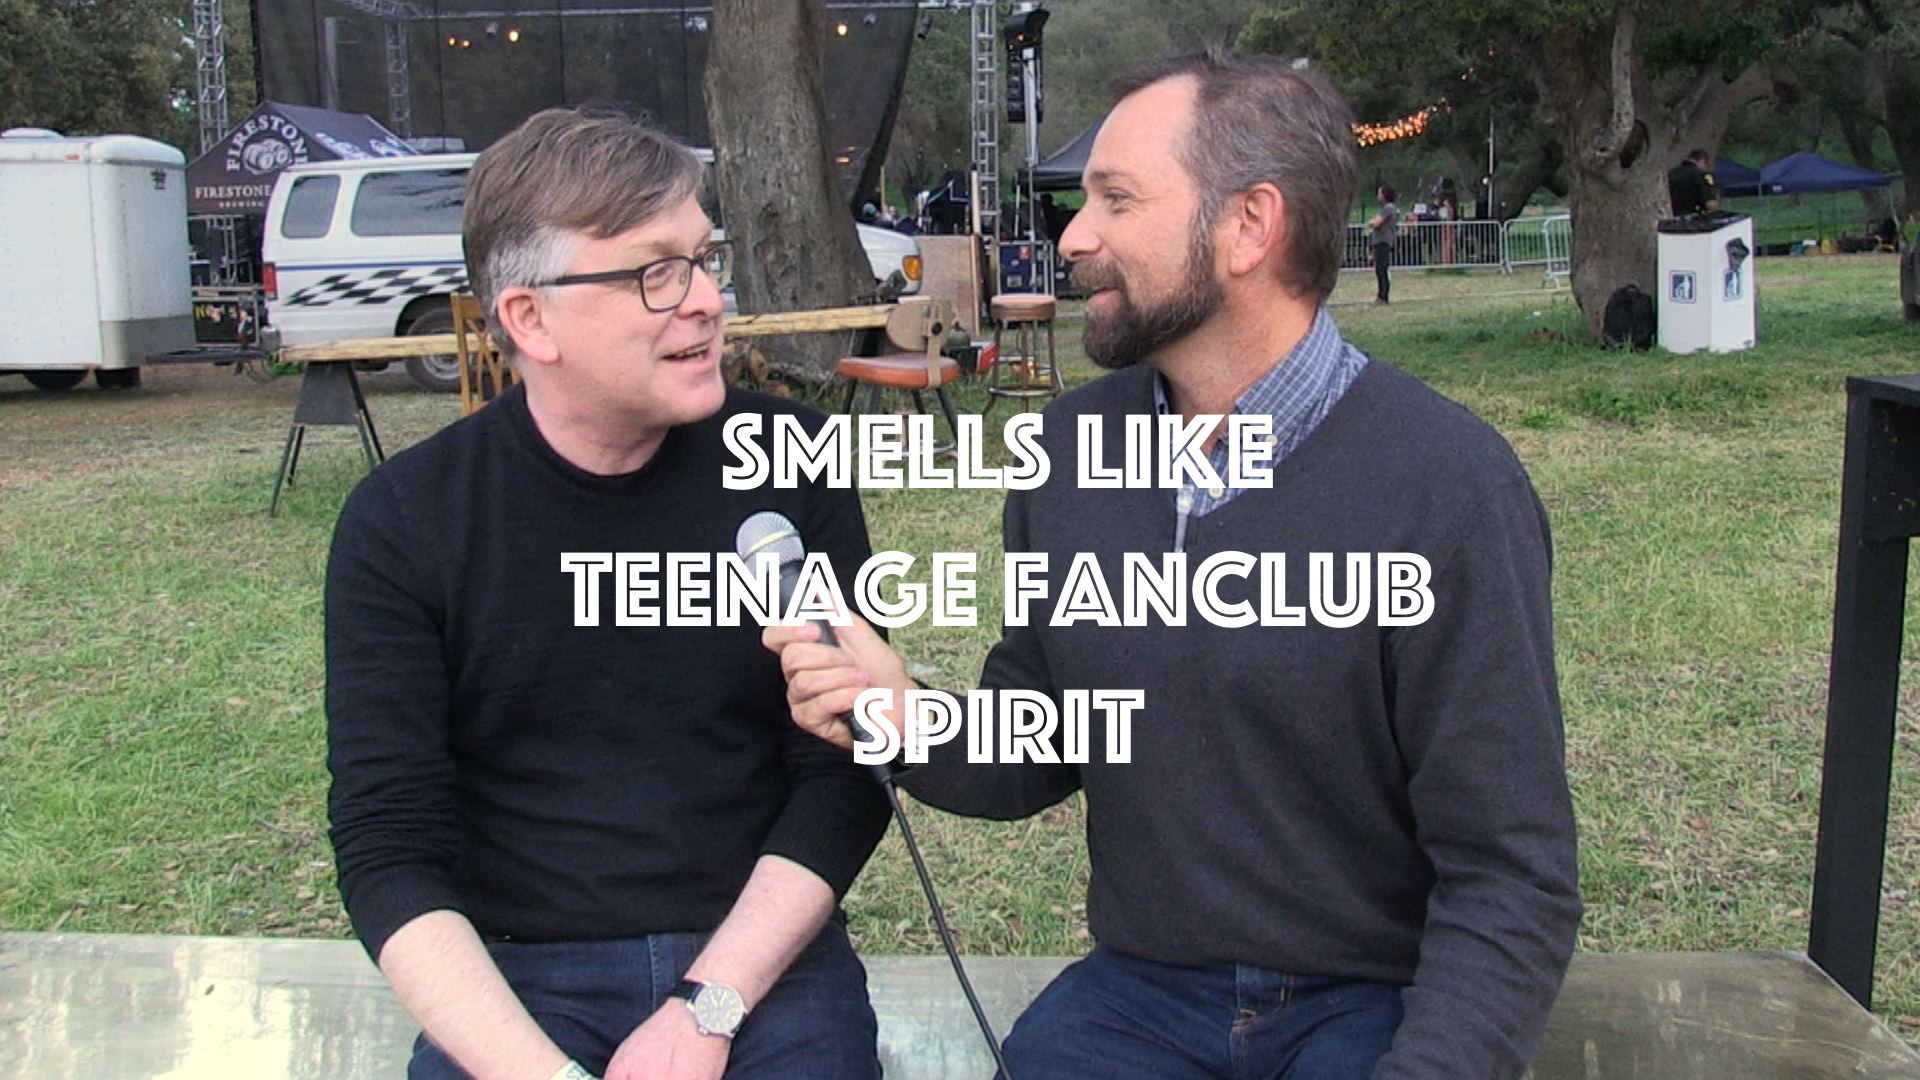 Smells-Like-Teenage-Fanclub-Spirit-Web